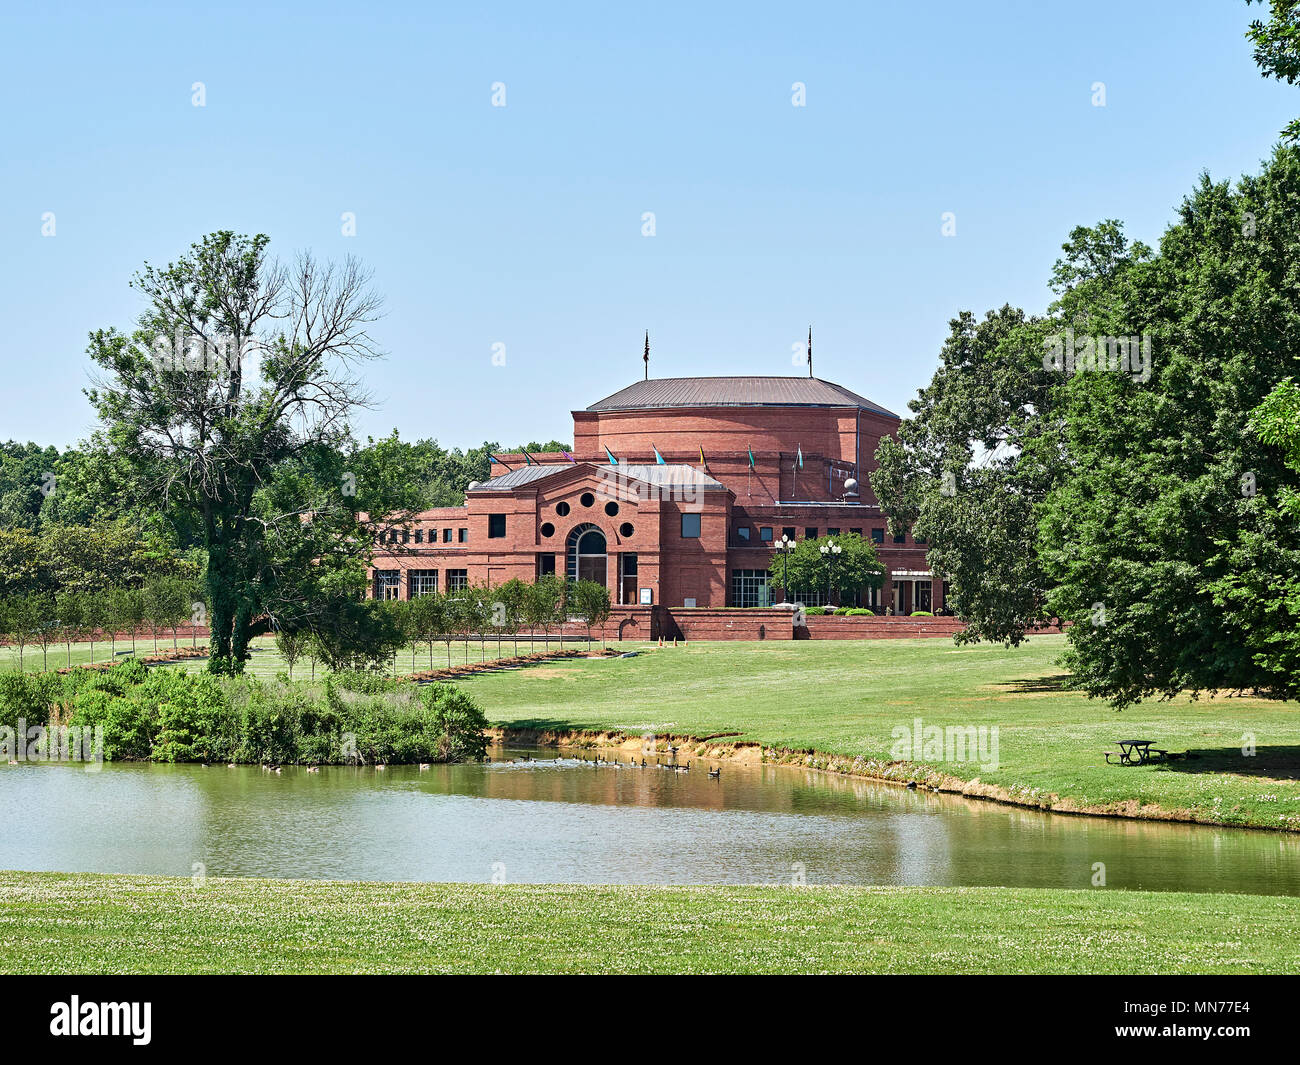 Alabama Shakespeare Festival exterior front of building in Blount Cultural Park, Montgomery, Alabama USA. - Stock Image